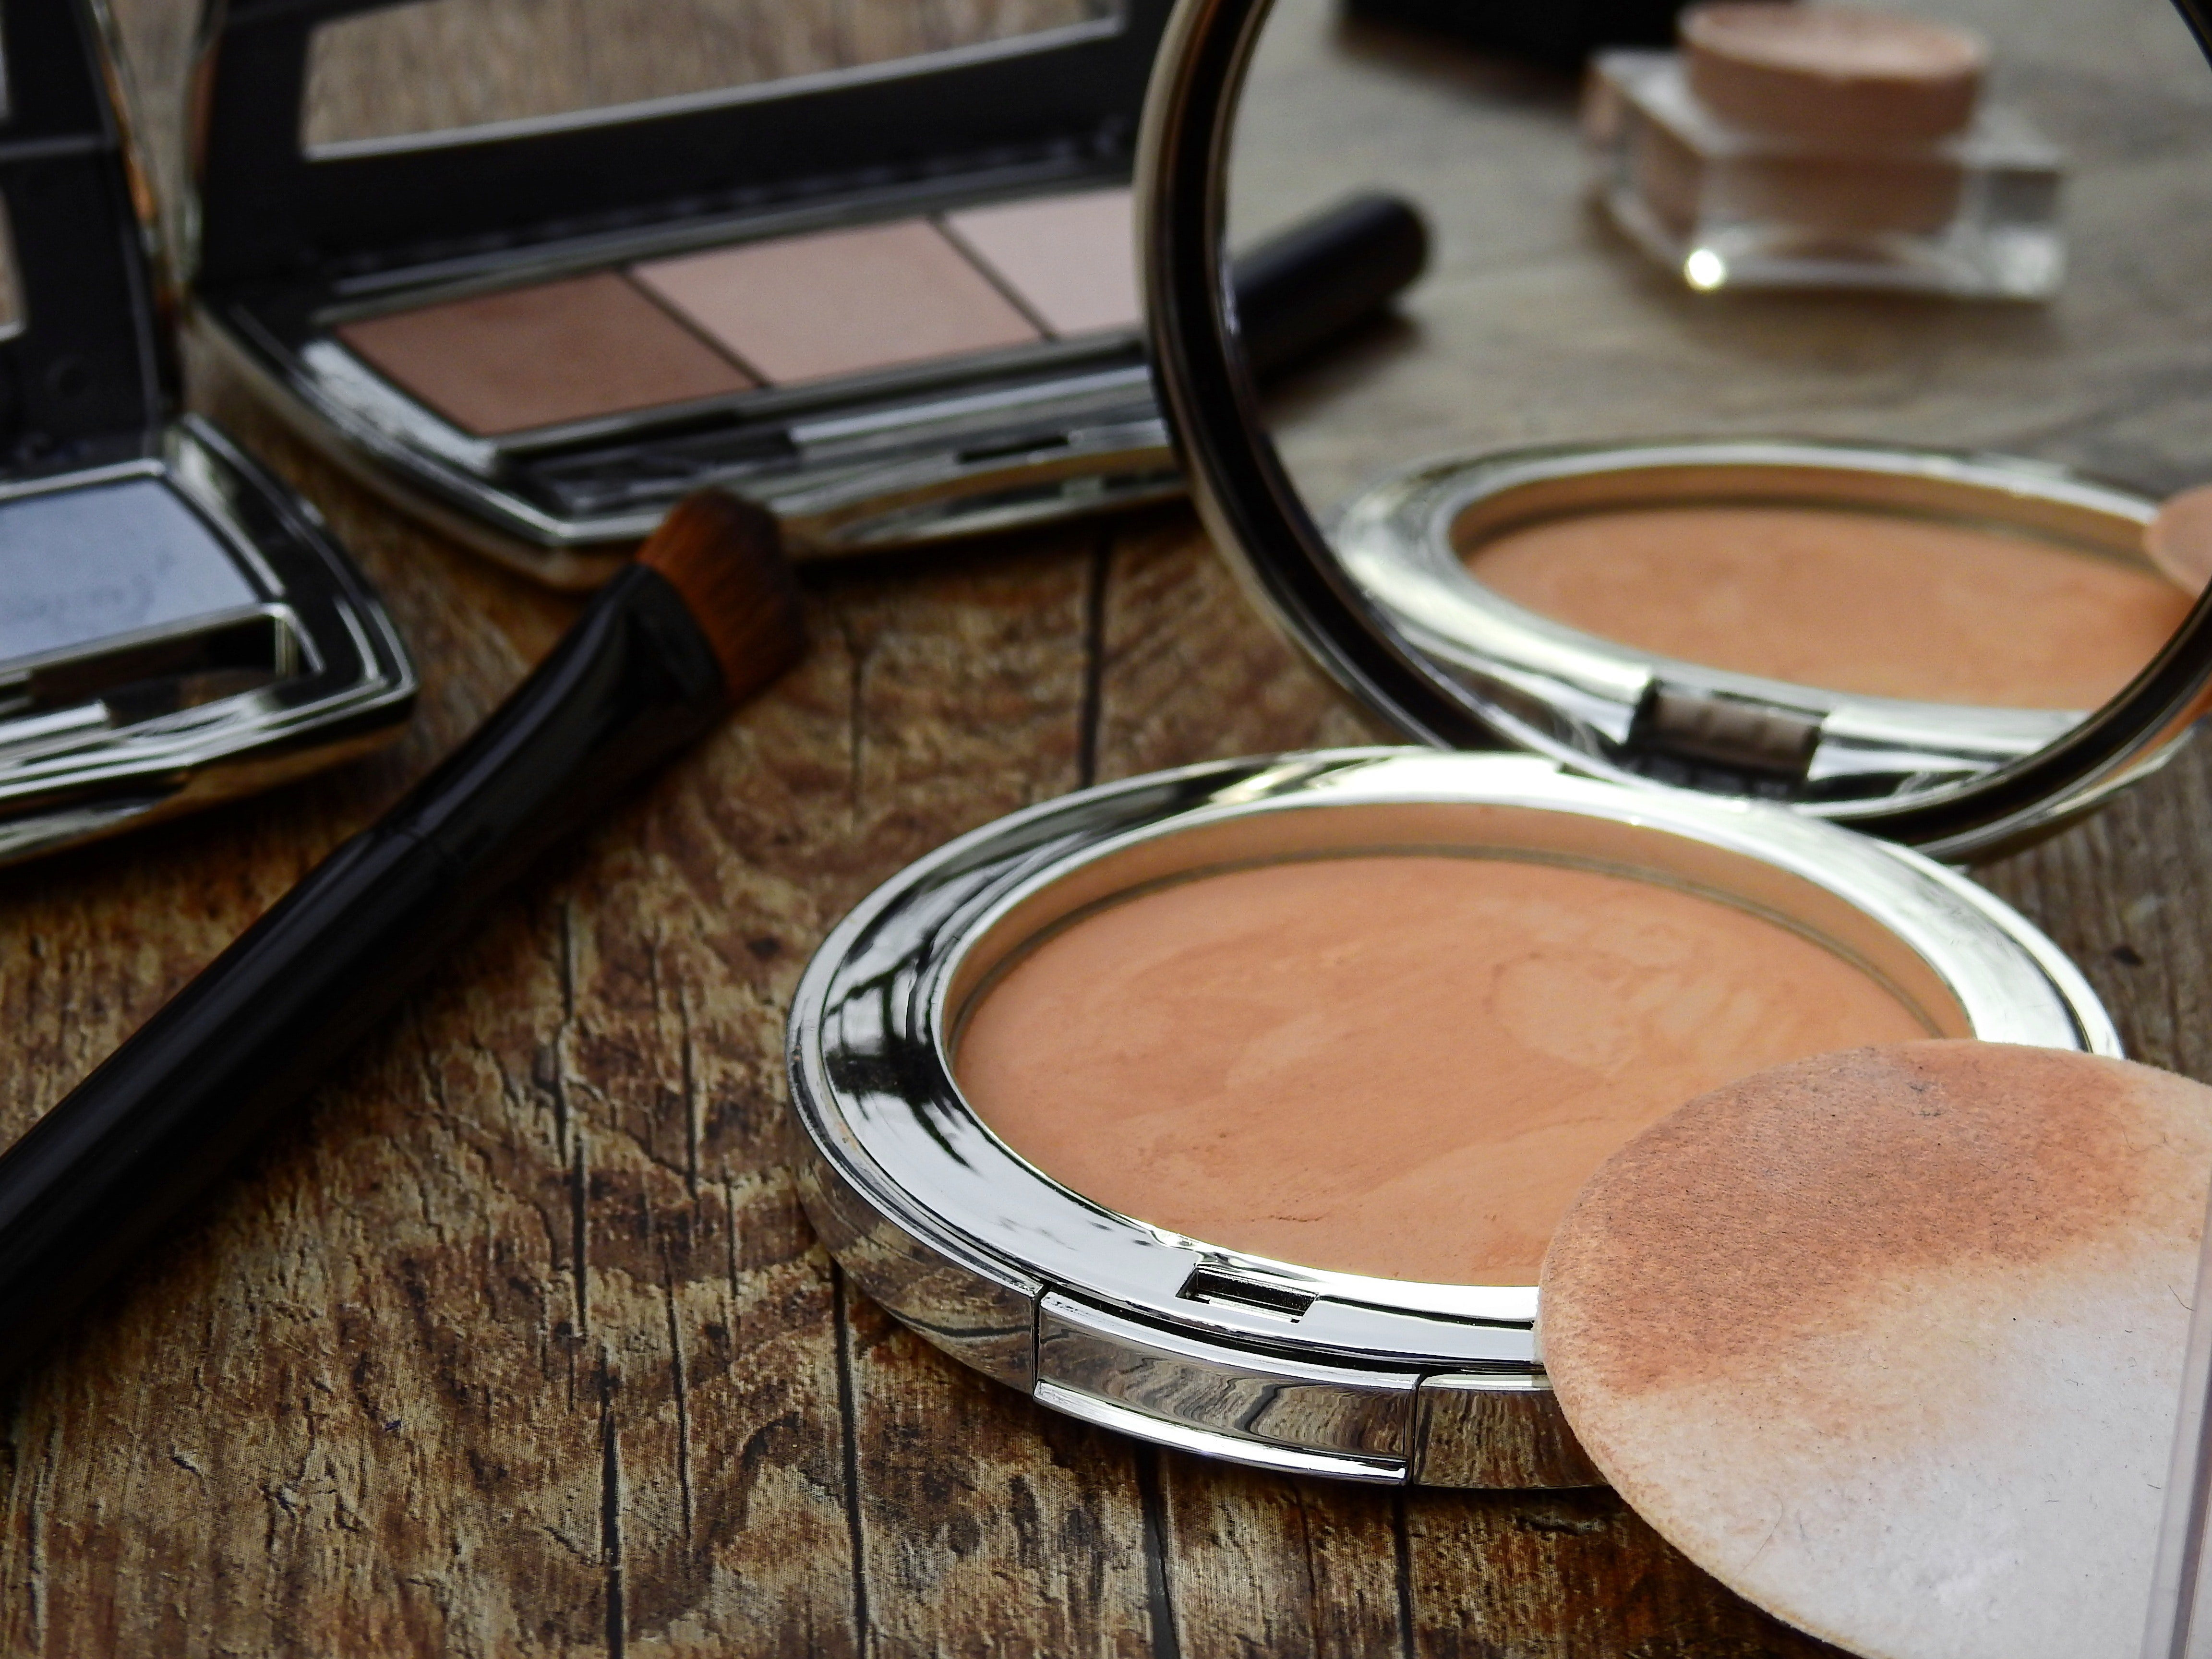 contouring products